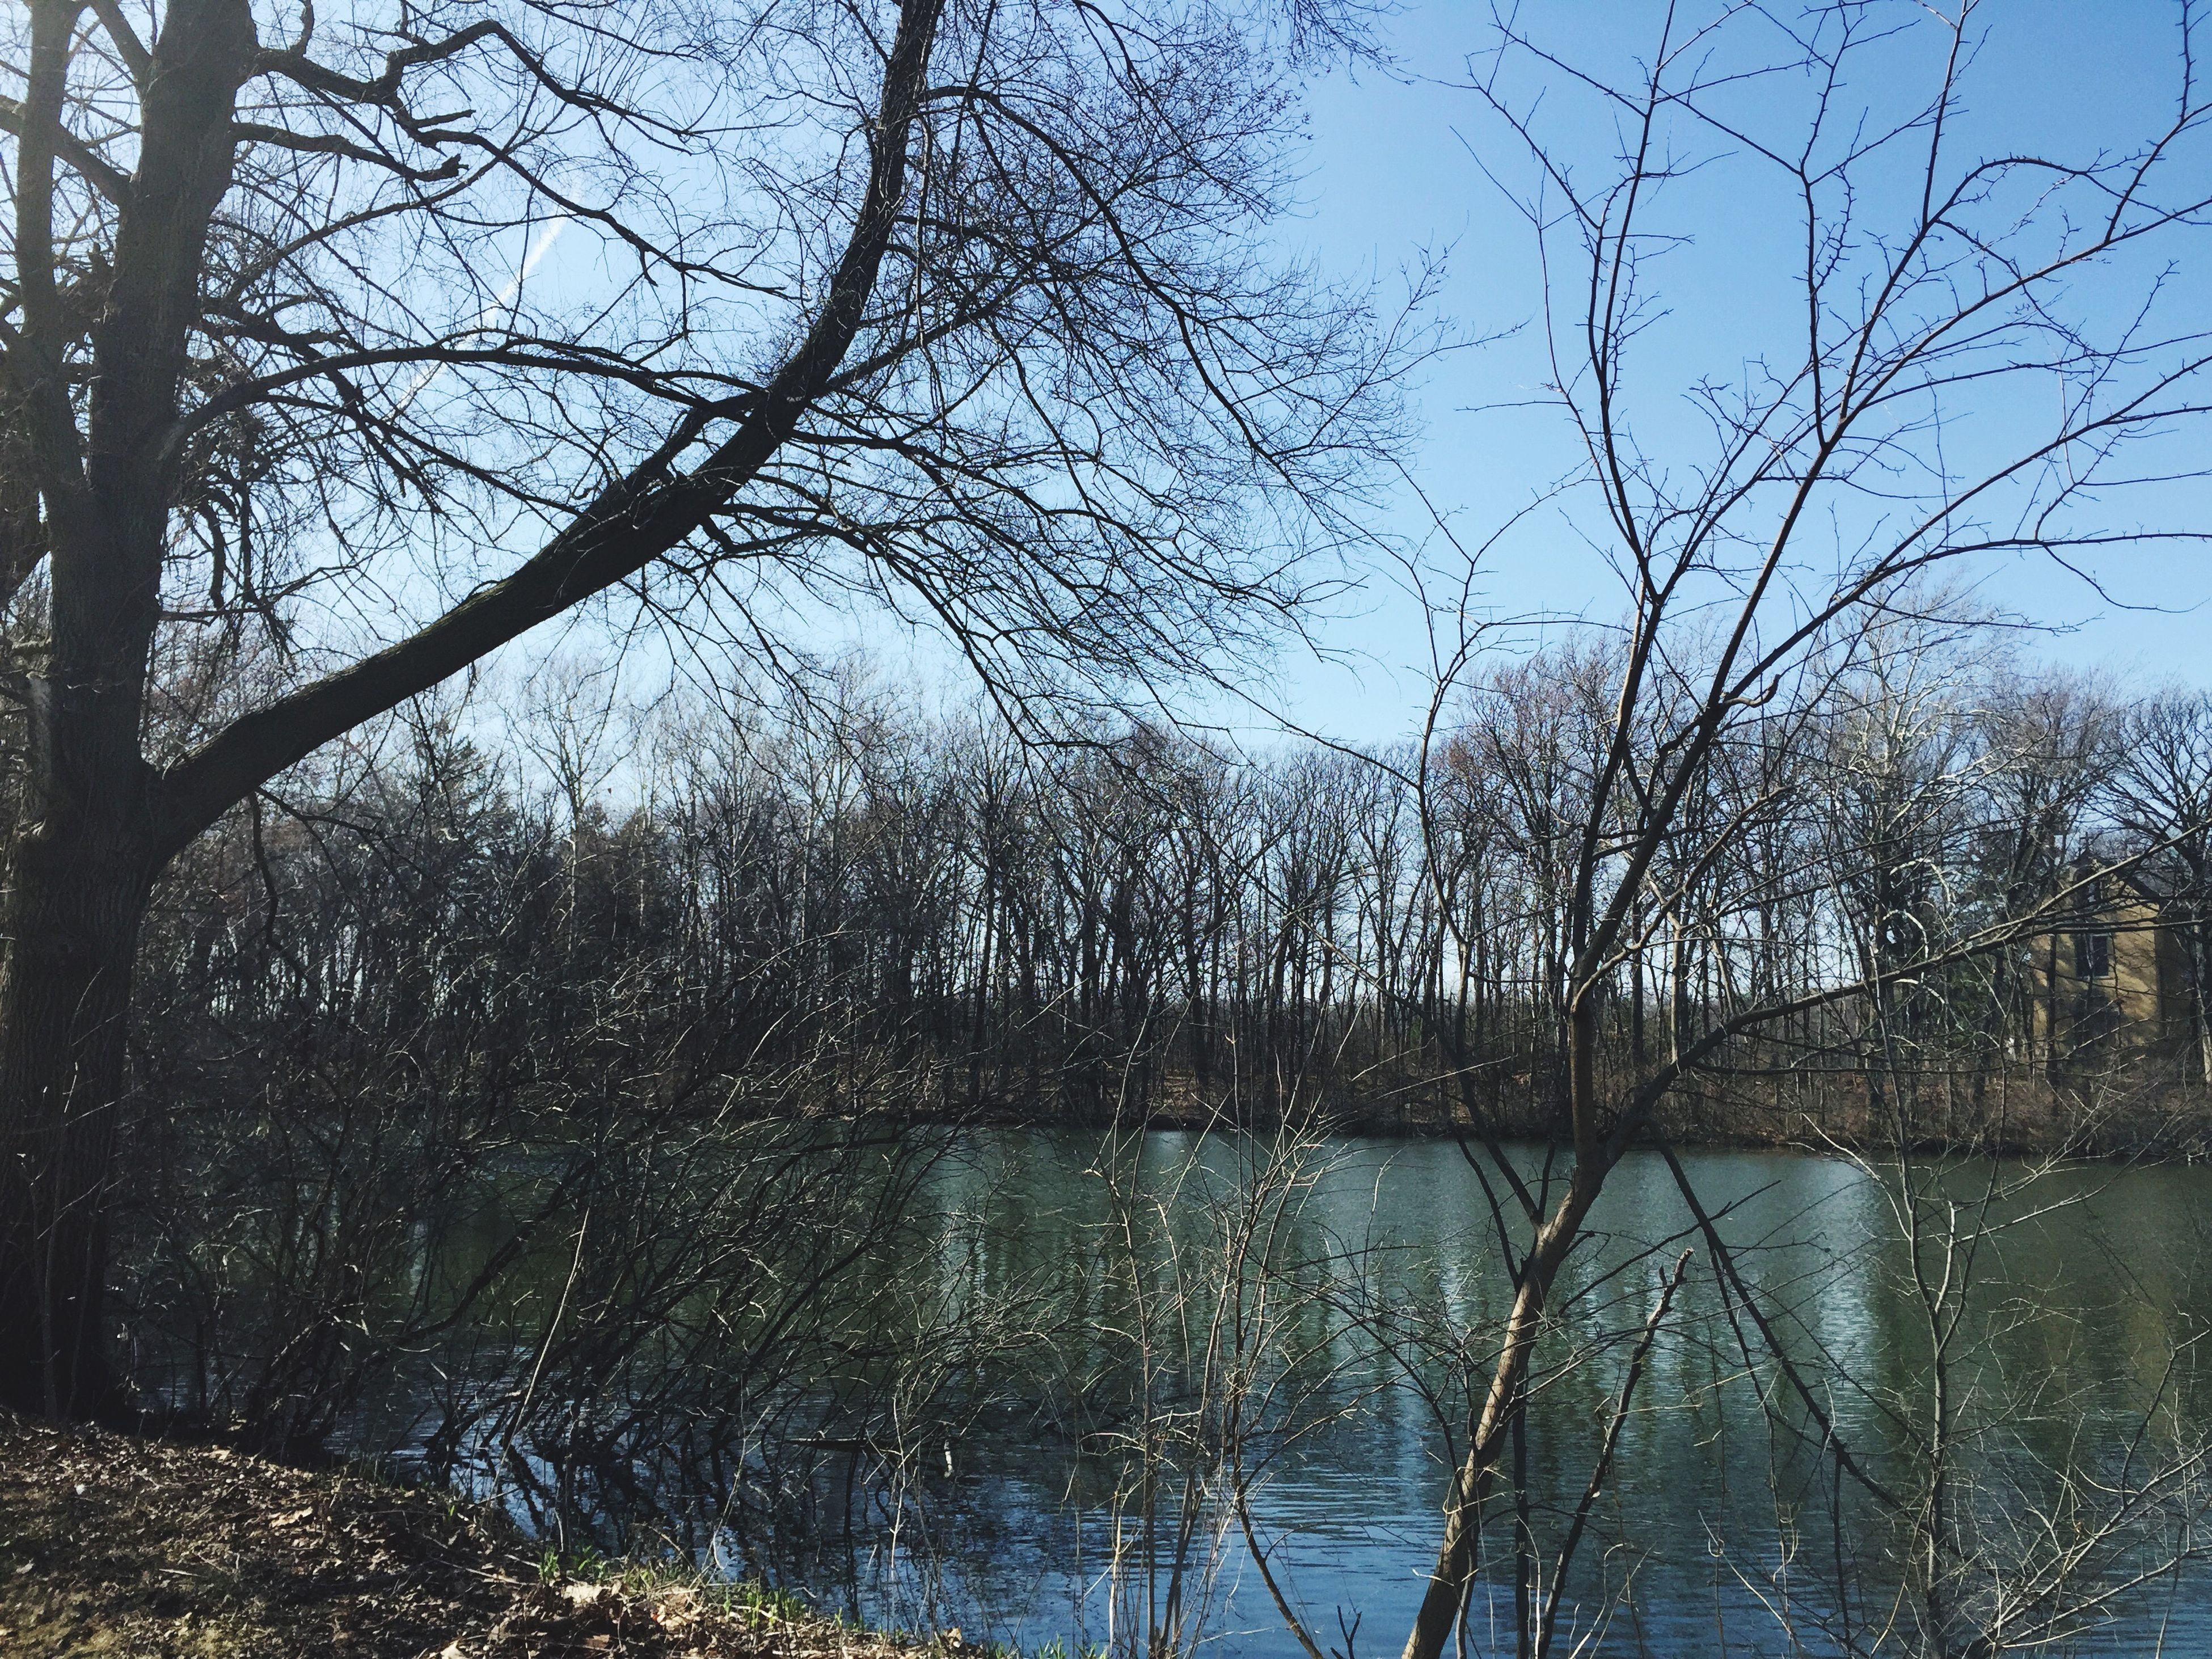 water, tree, reflection, lake, tranquility, bare tree, sky, nature, tranquil scene, branch, scenics, beauty in nature, clear sky, growth, river, day, waterfront, no people, outdoors, blue